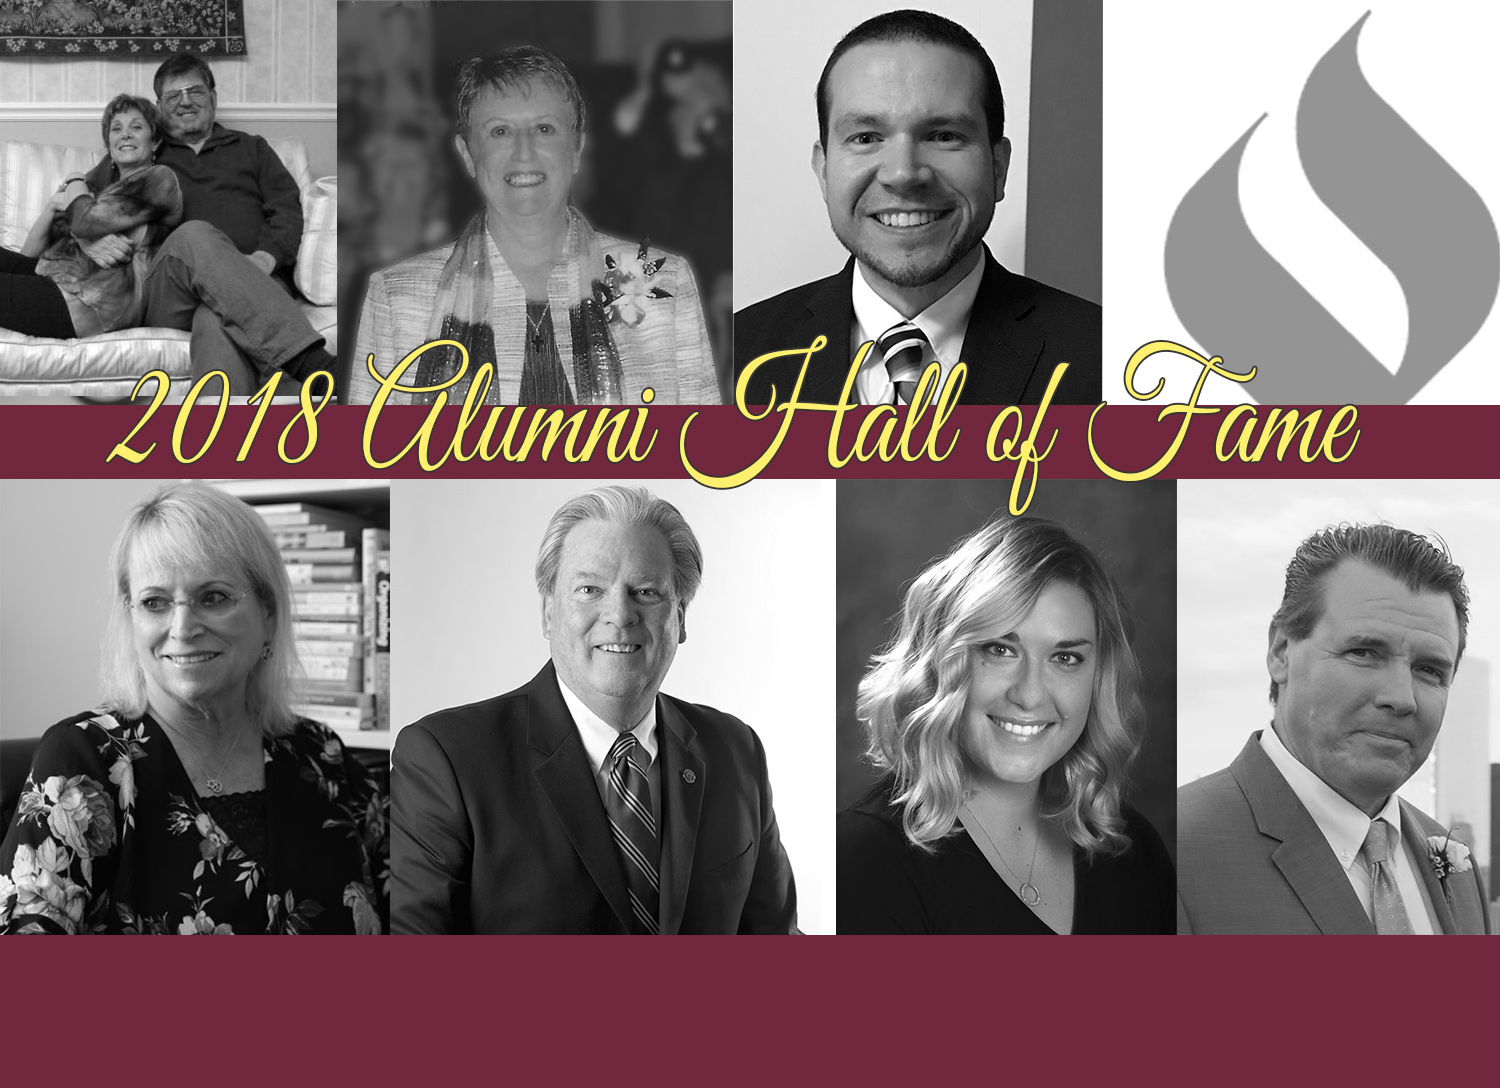 collage image of 2018 hall of fame honorees